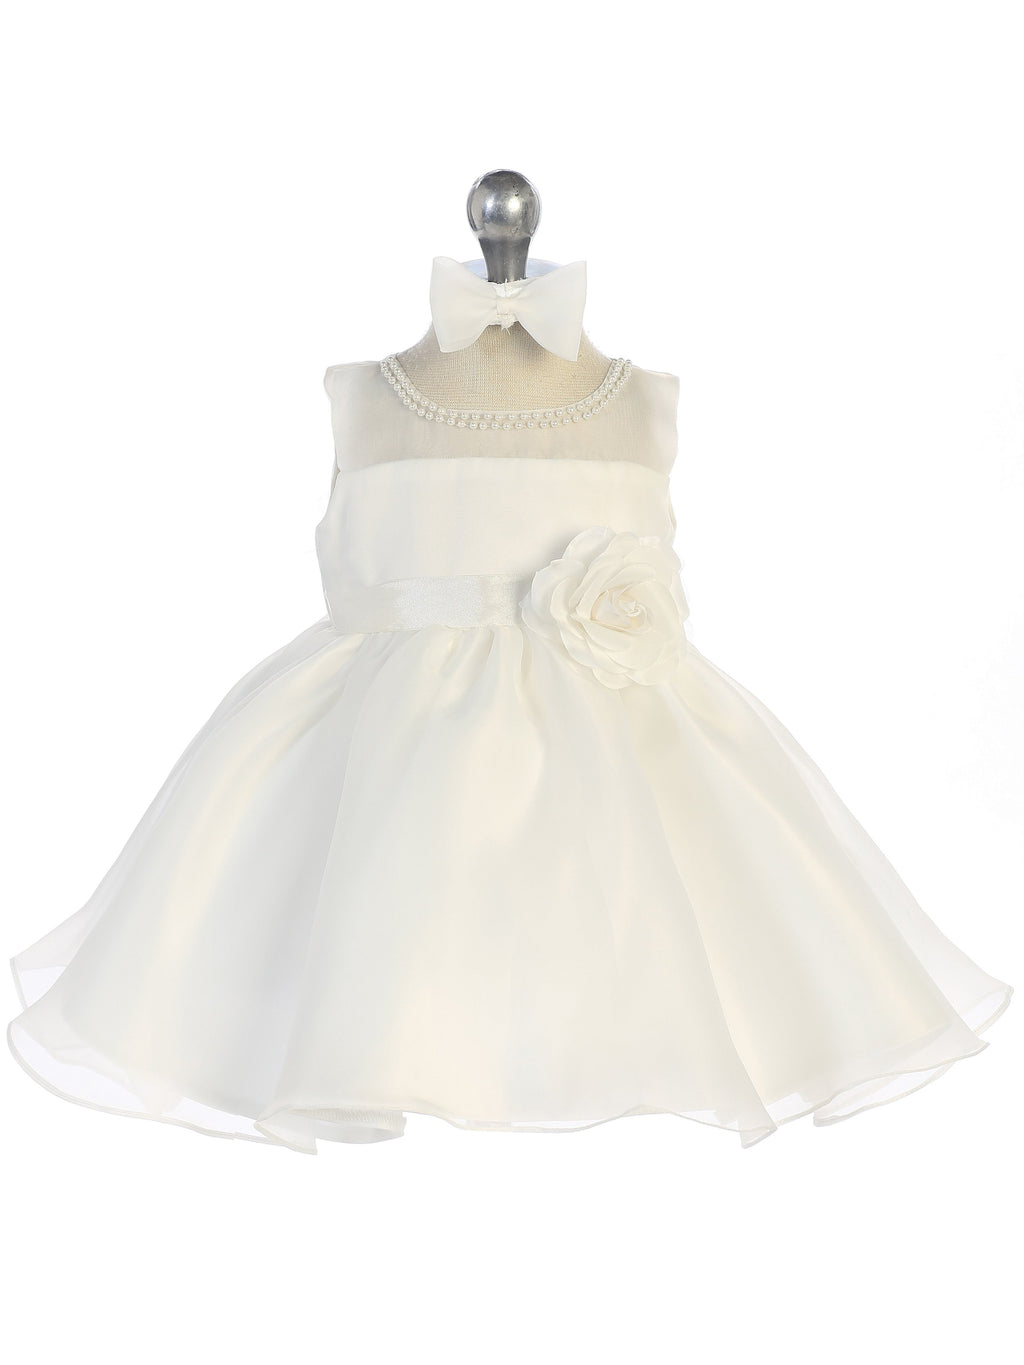 Ivory Bridal Organza Infant Dress with Illusion Neckline